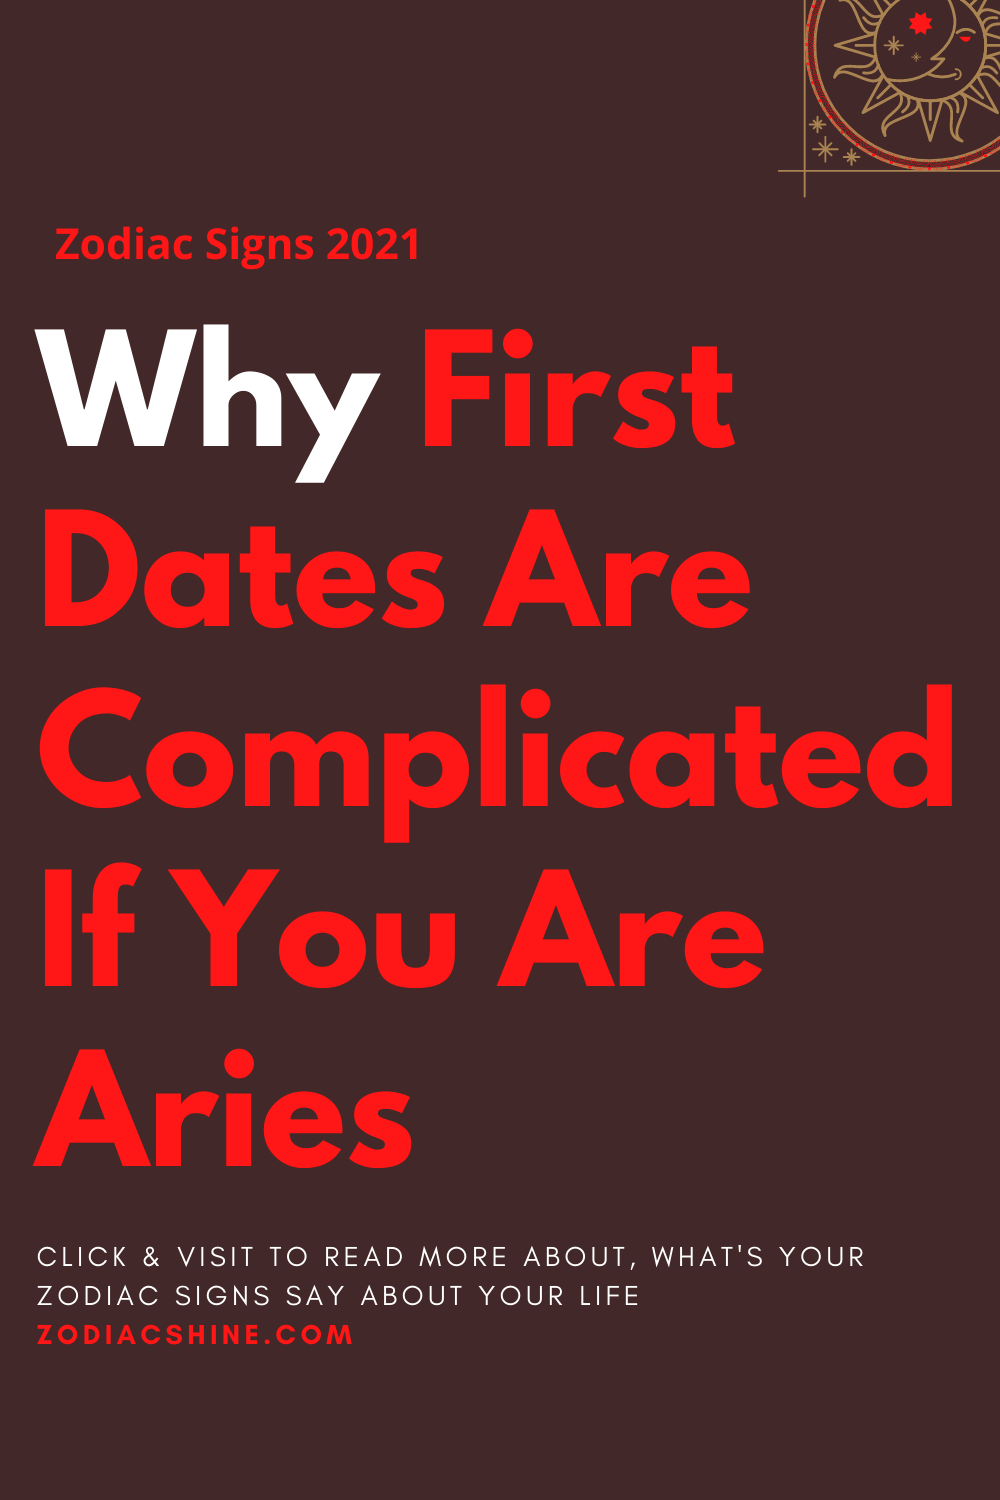 Why First Dates Are Complicated If You Are Aries